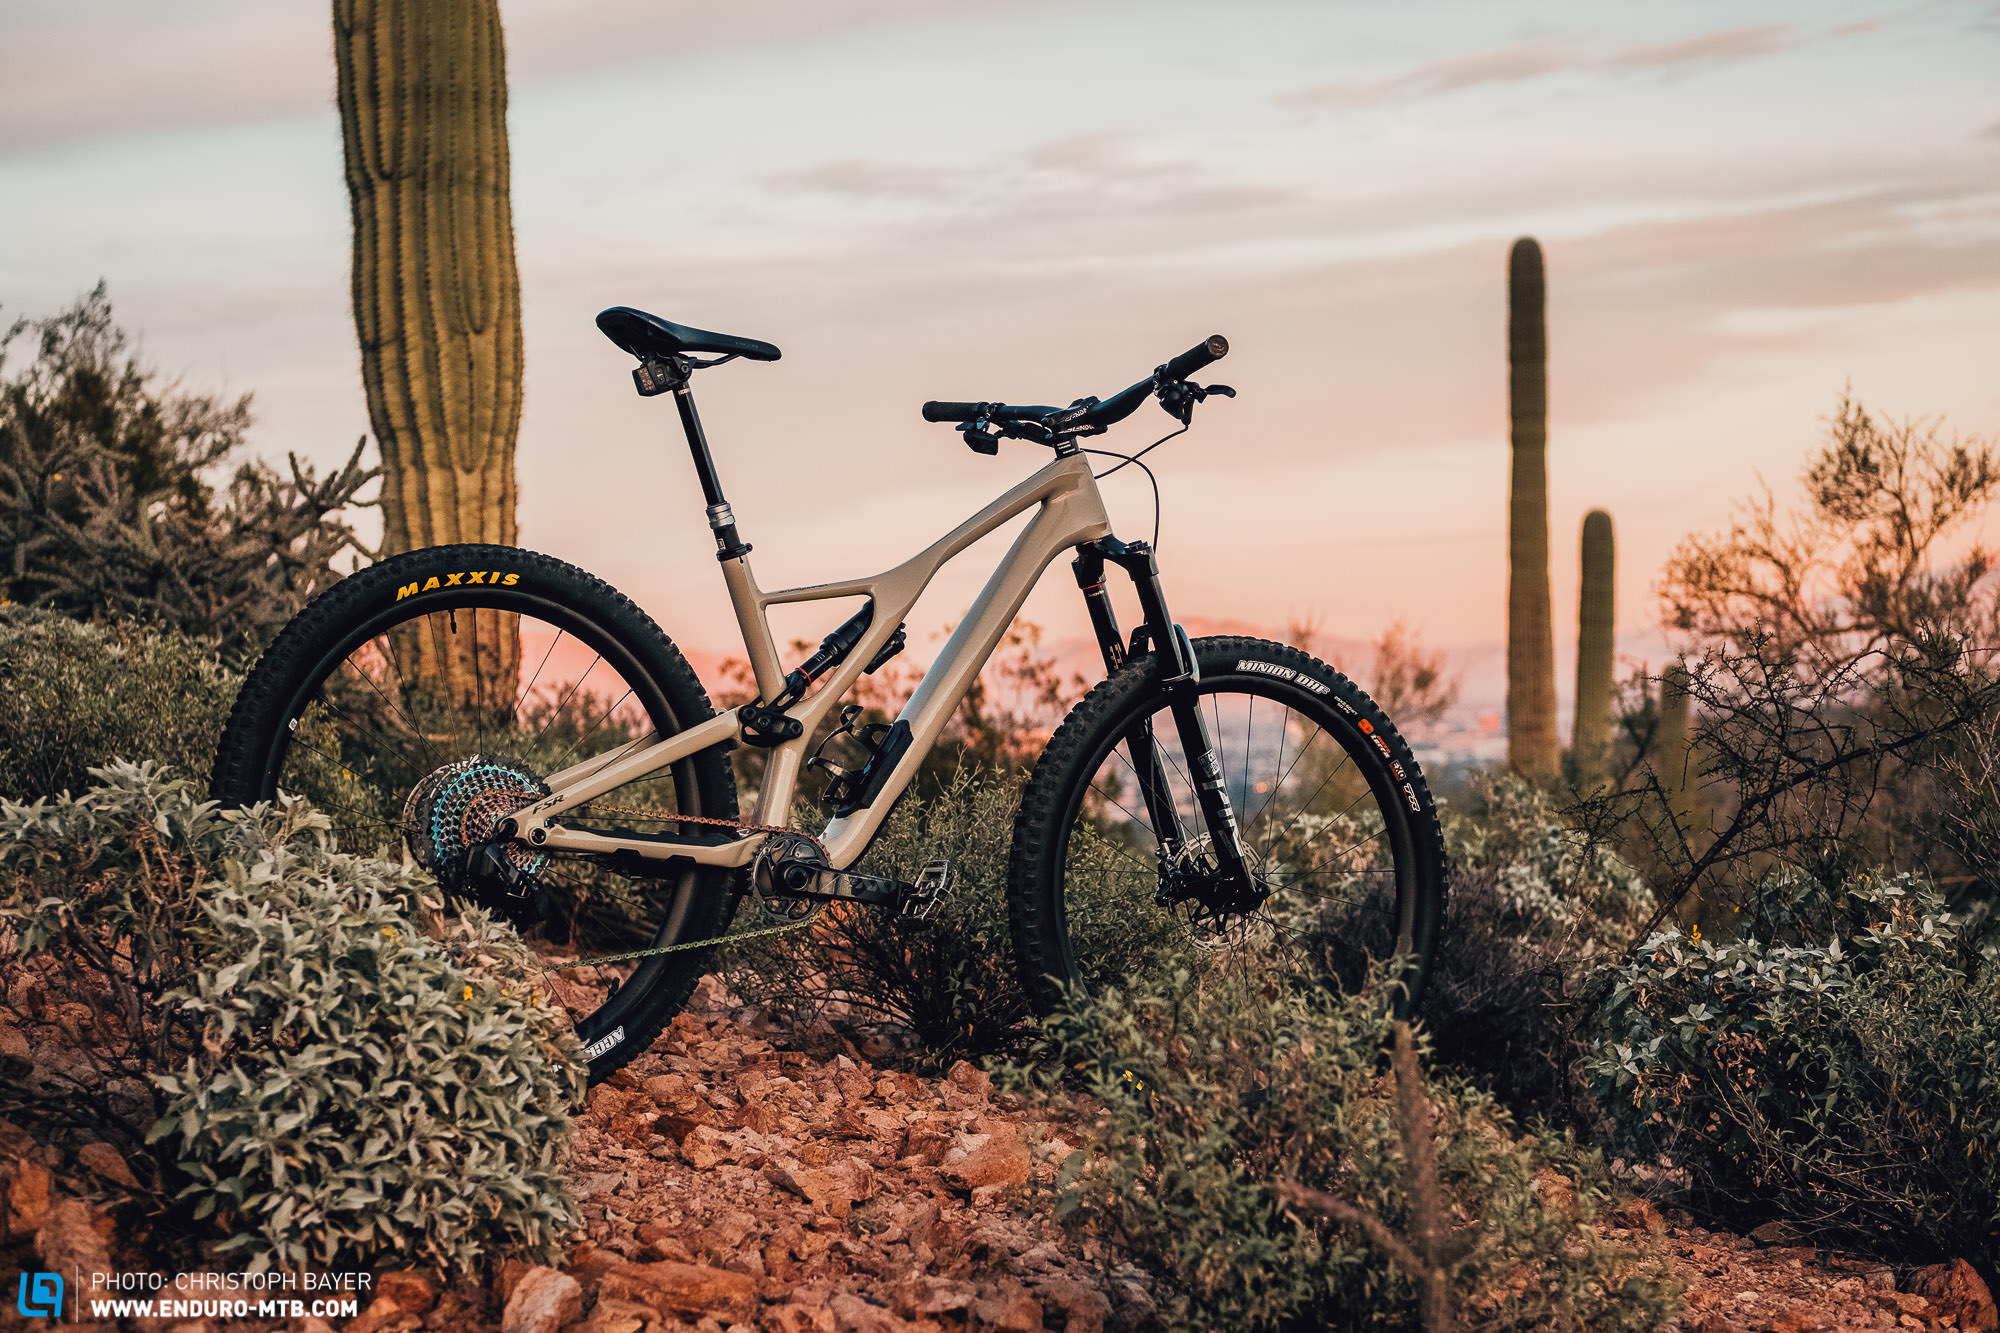 (Christoph Bayer) SRAM AXS – 13 good reasons why electronic components on bikes are the future